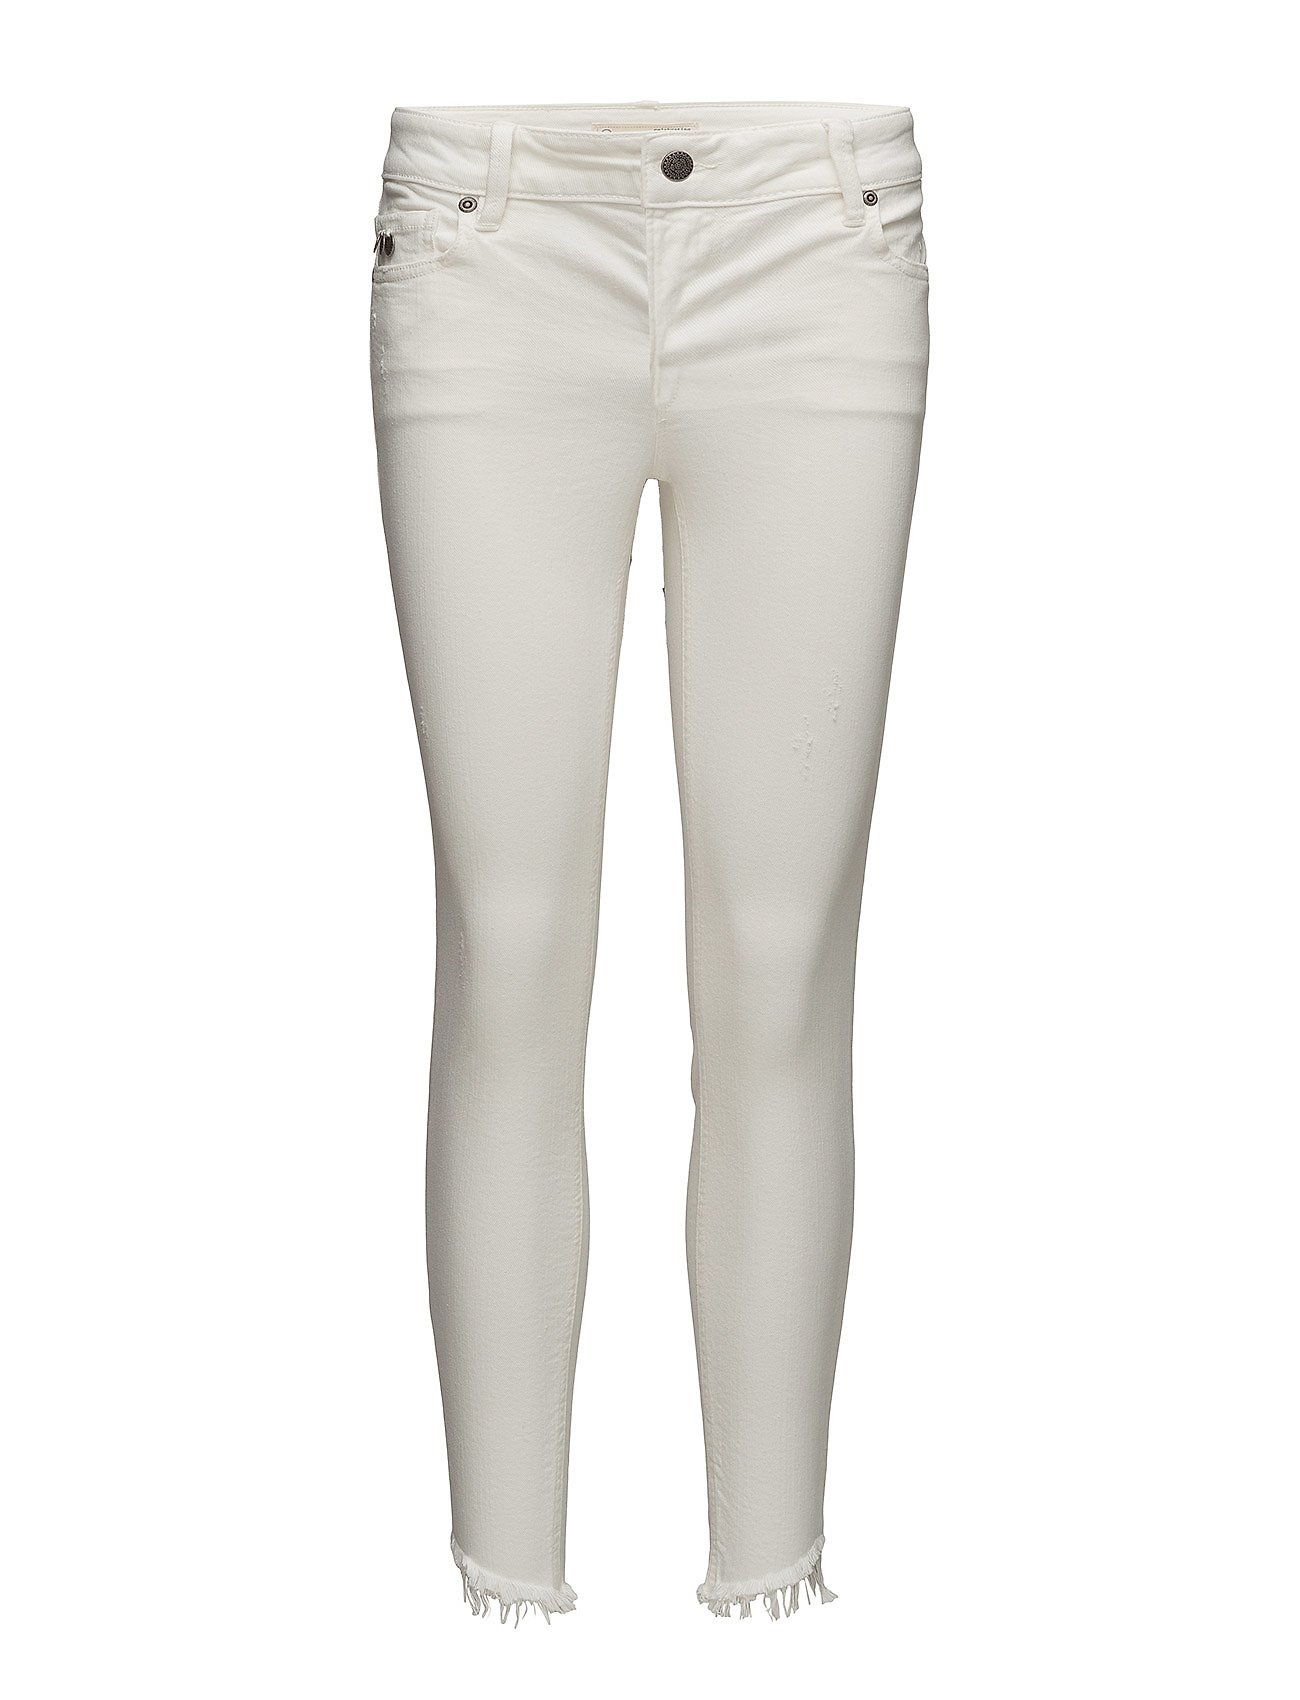 Image of Simplyfied Jean Skinny Jeans Hvid ODD MOLLY (2953092213)